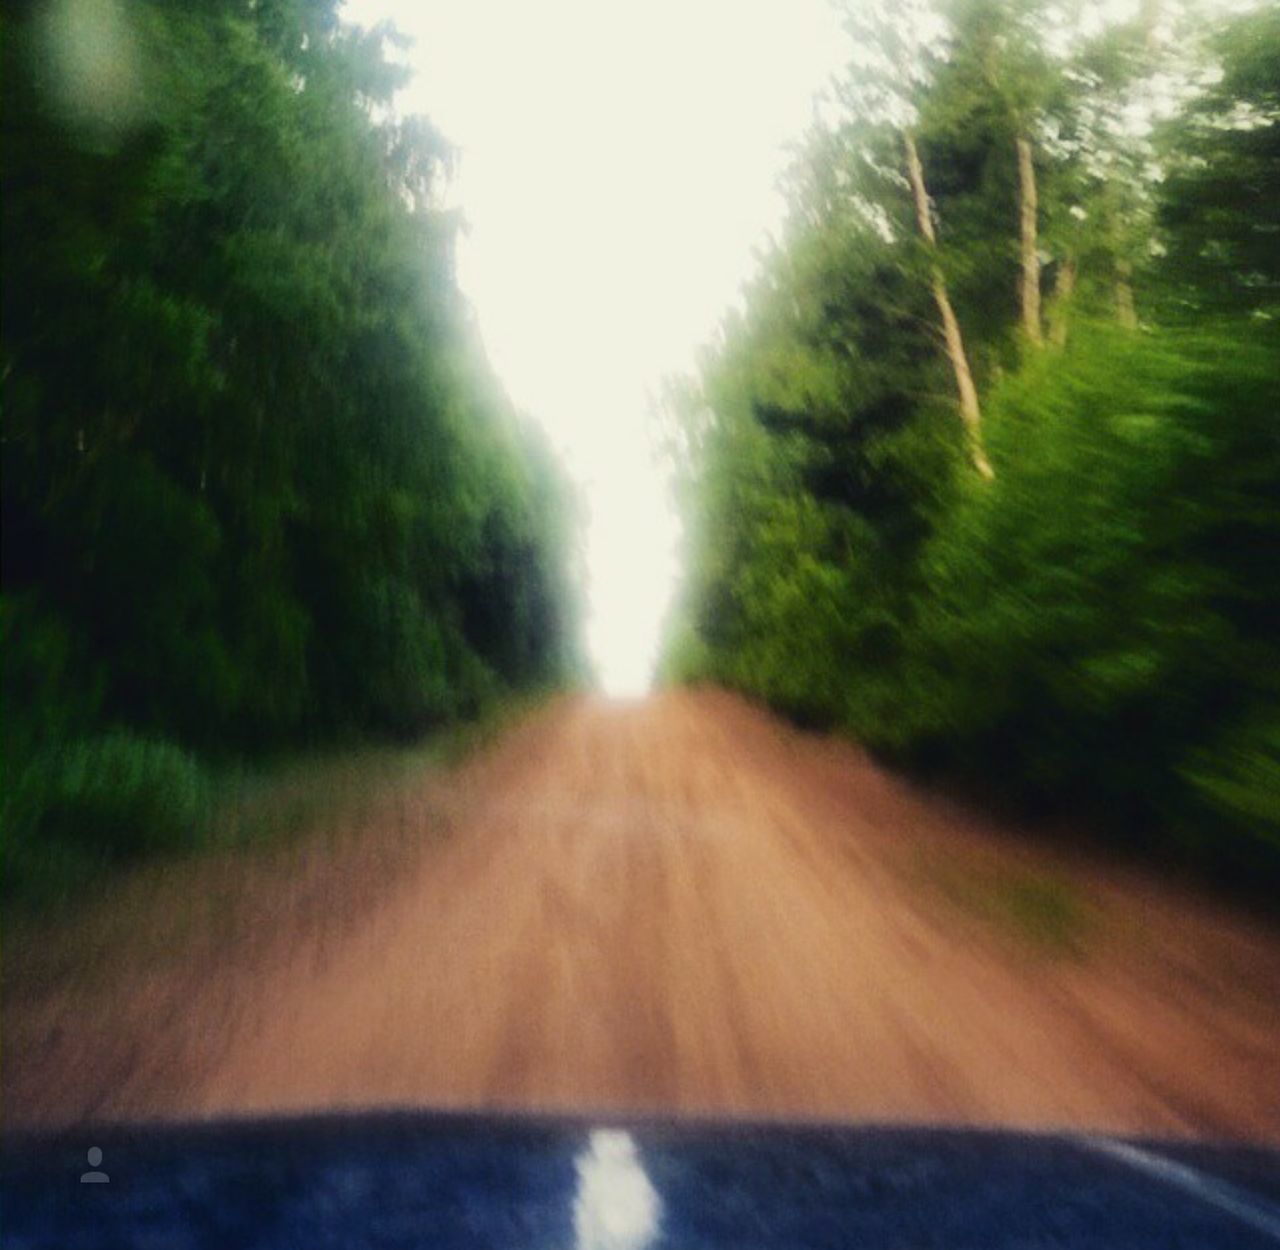 Tree Road Nature Transportation Driving The Way Forward Outdoors Day Motion Sky Moving Rippinupthebackroads